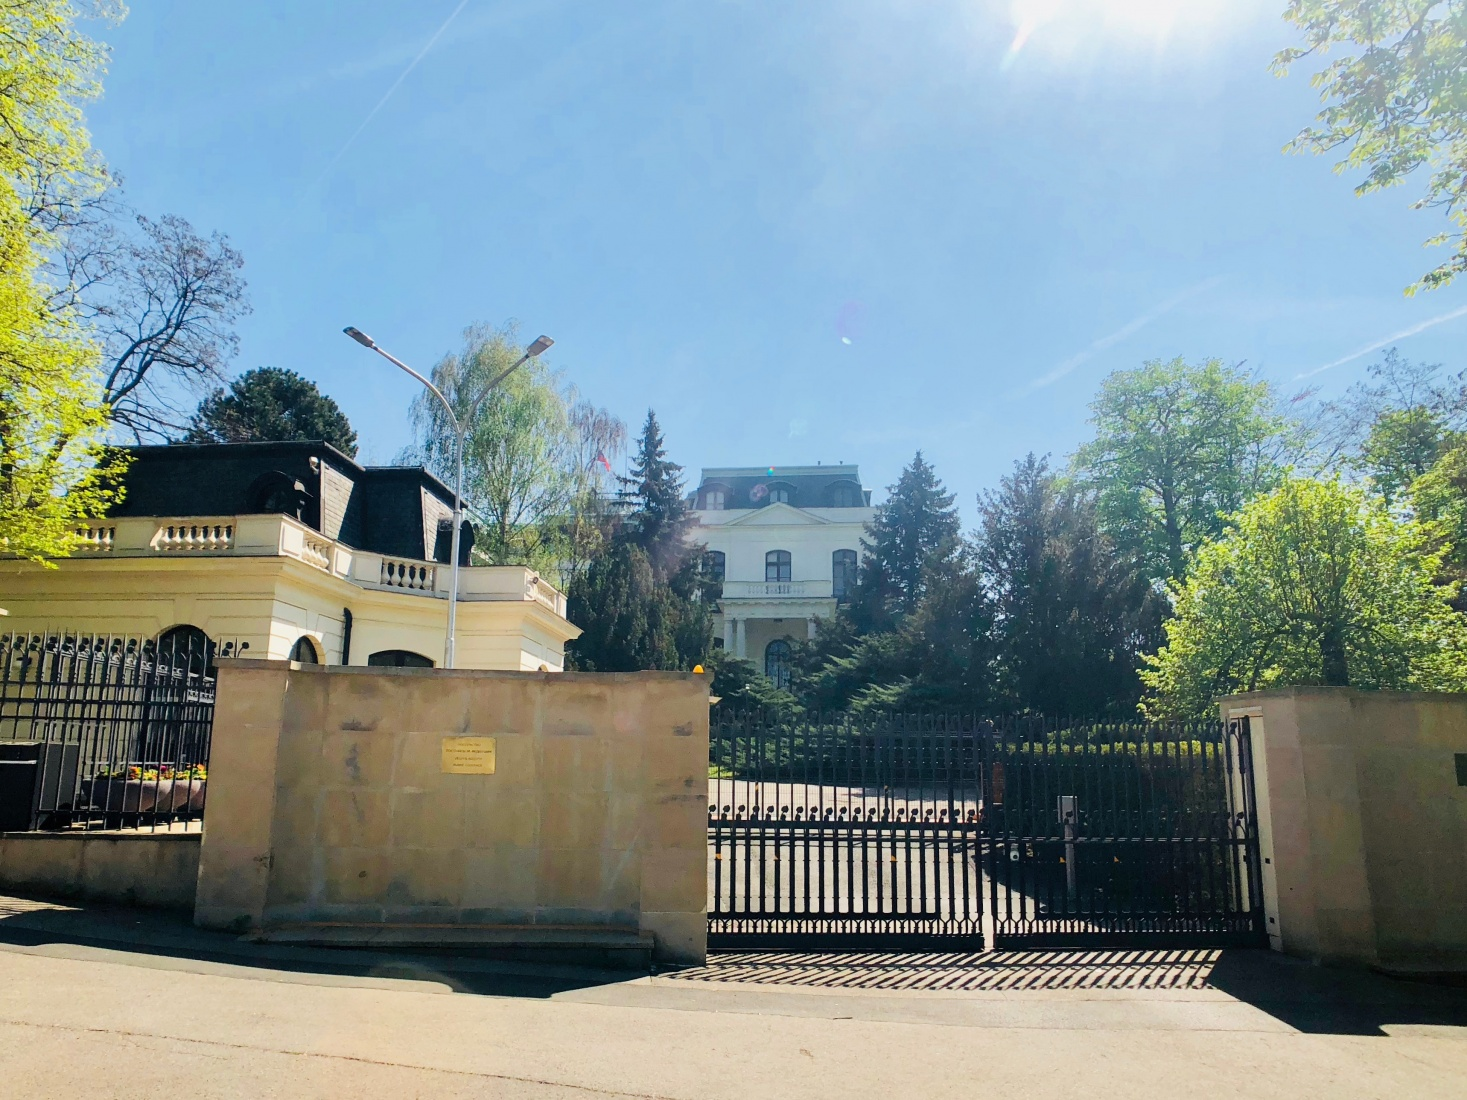 Gate to the Russian embassy compound in Prague, near Stromovka, and the villa inside.